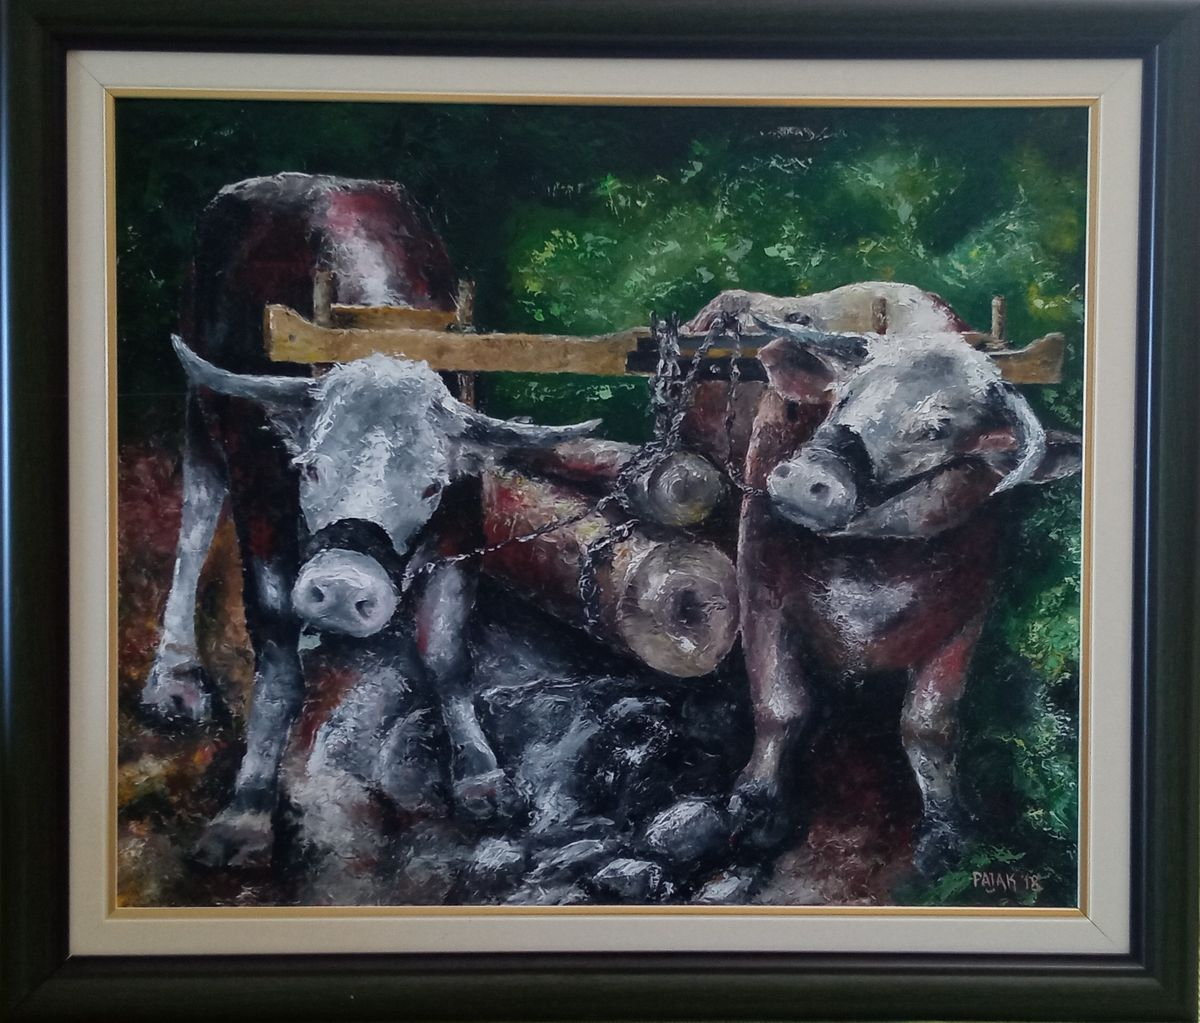 Oxen at work